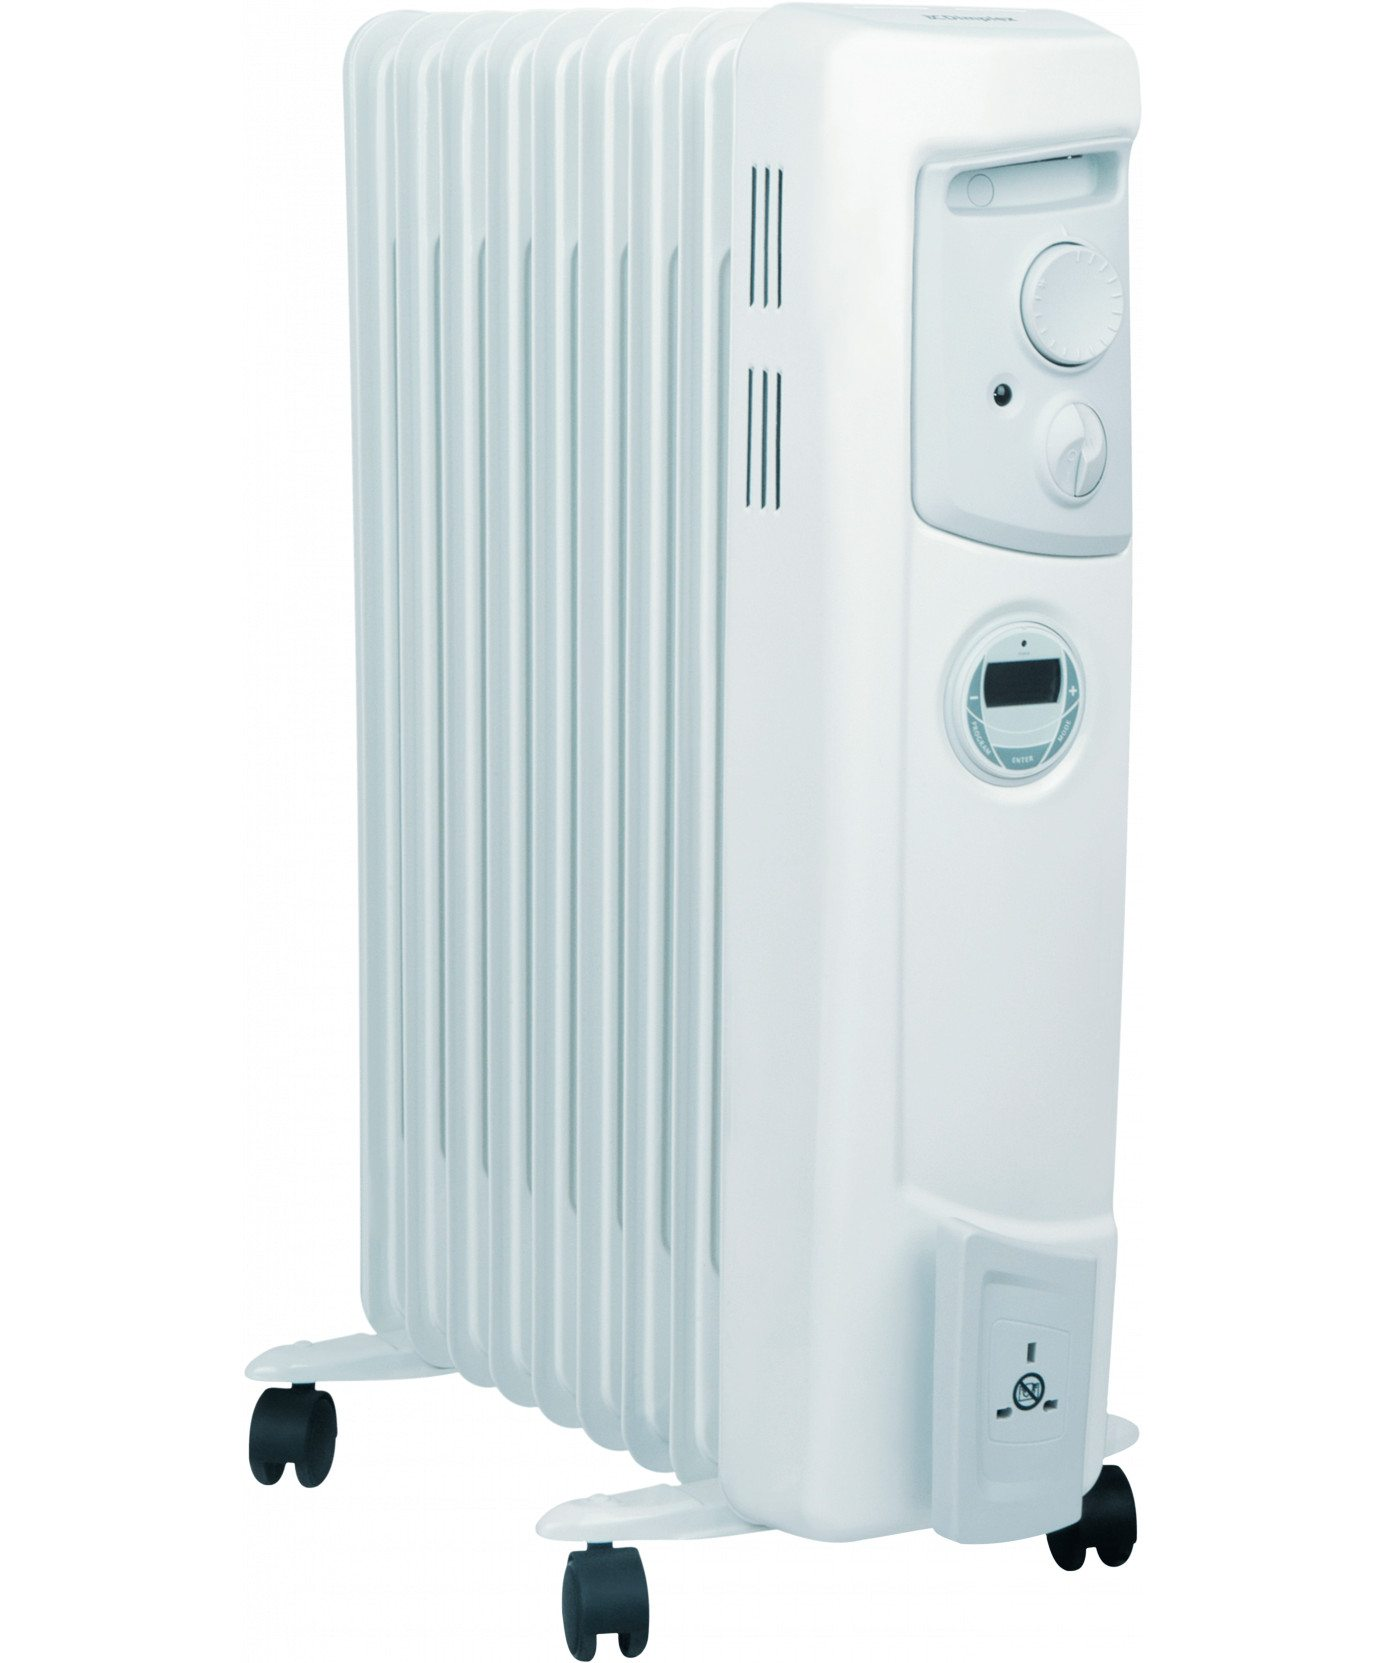 Oil Filled Radiators 2 kW Electric Oil Filled Column Radiator with Timer OFC2000TI 0 0